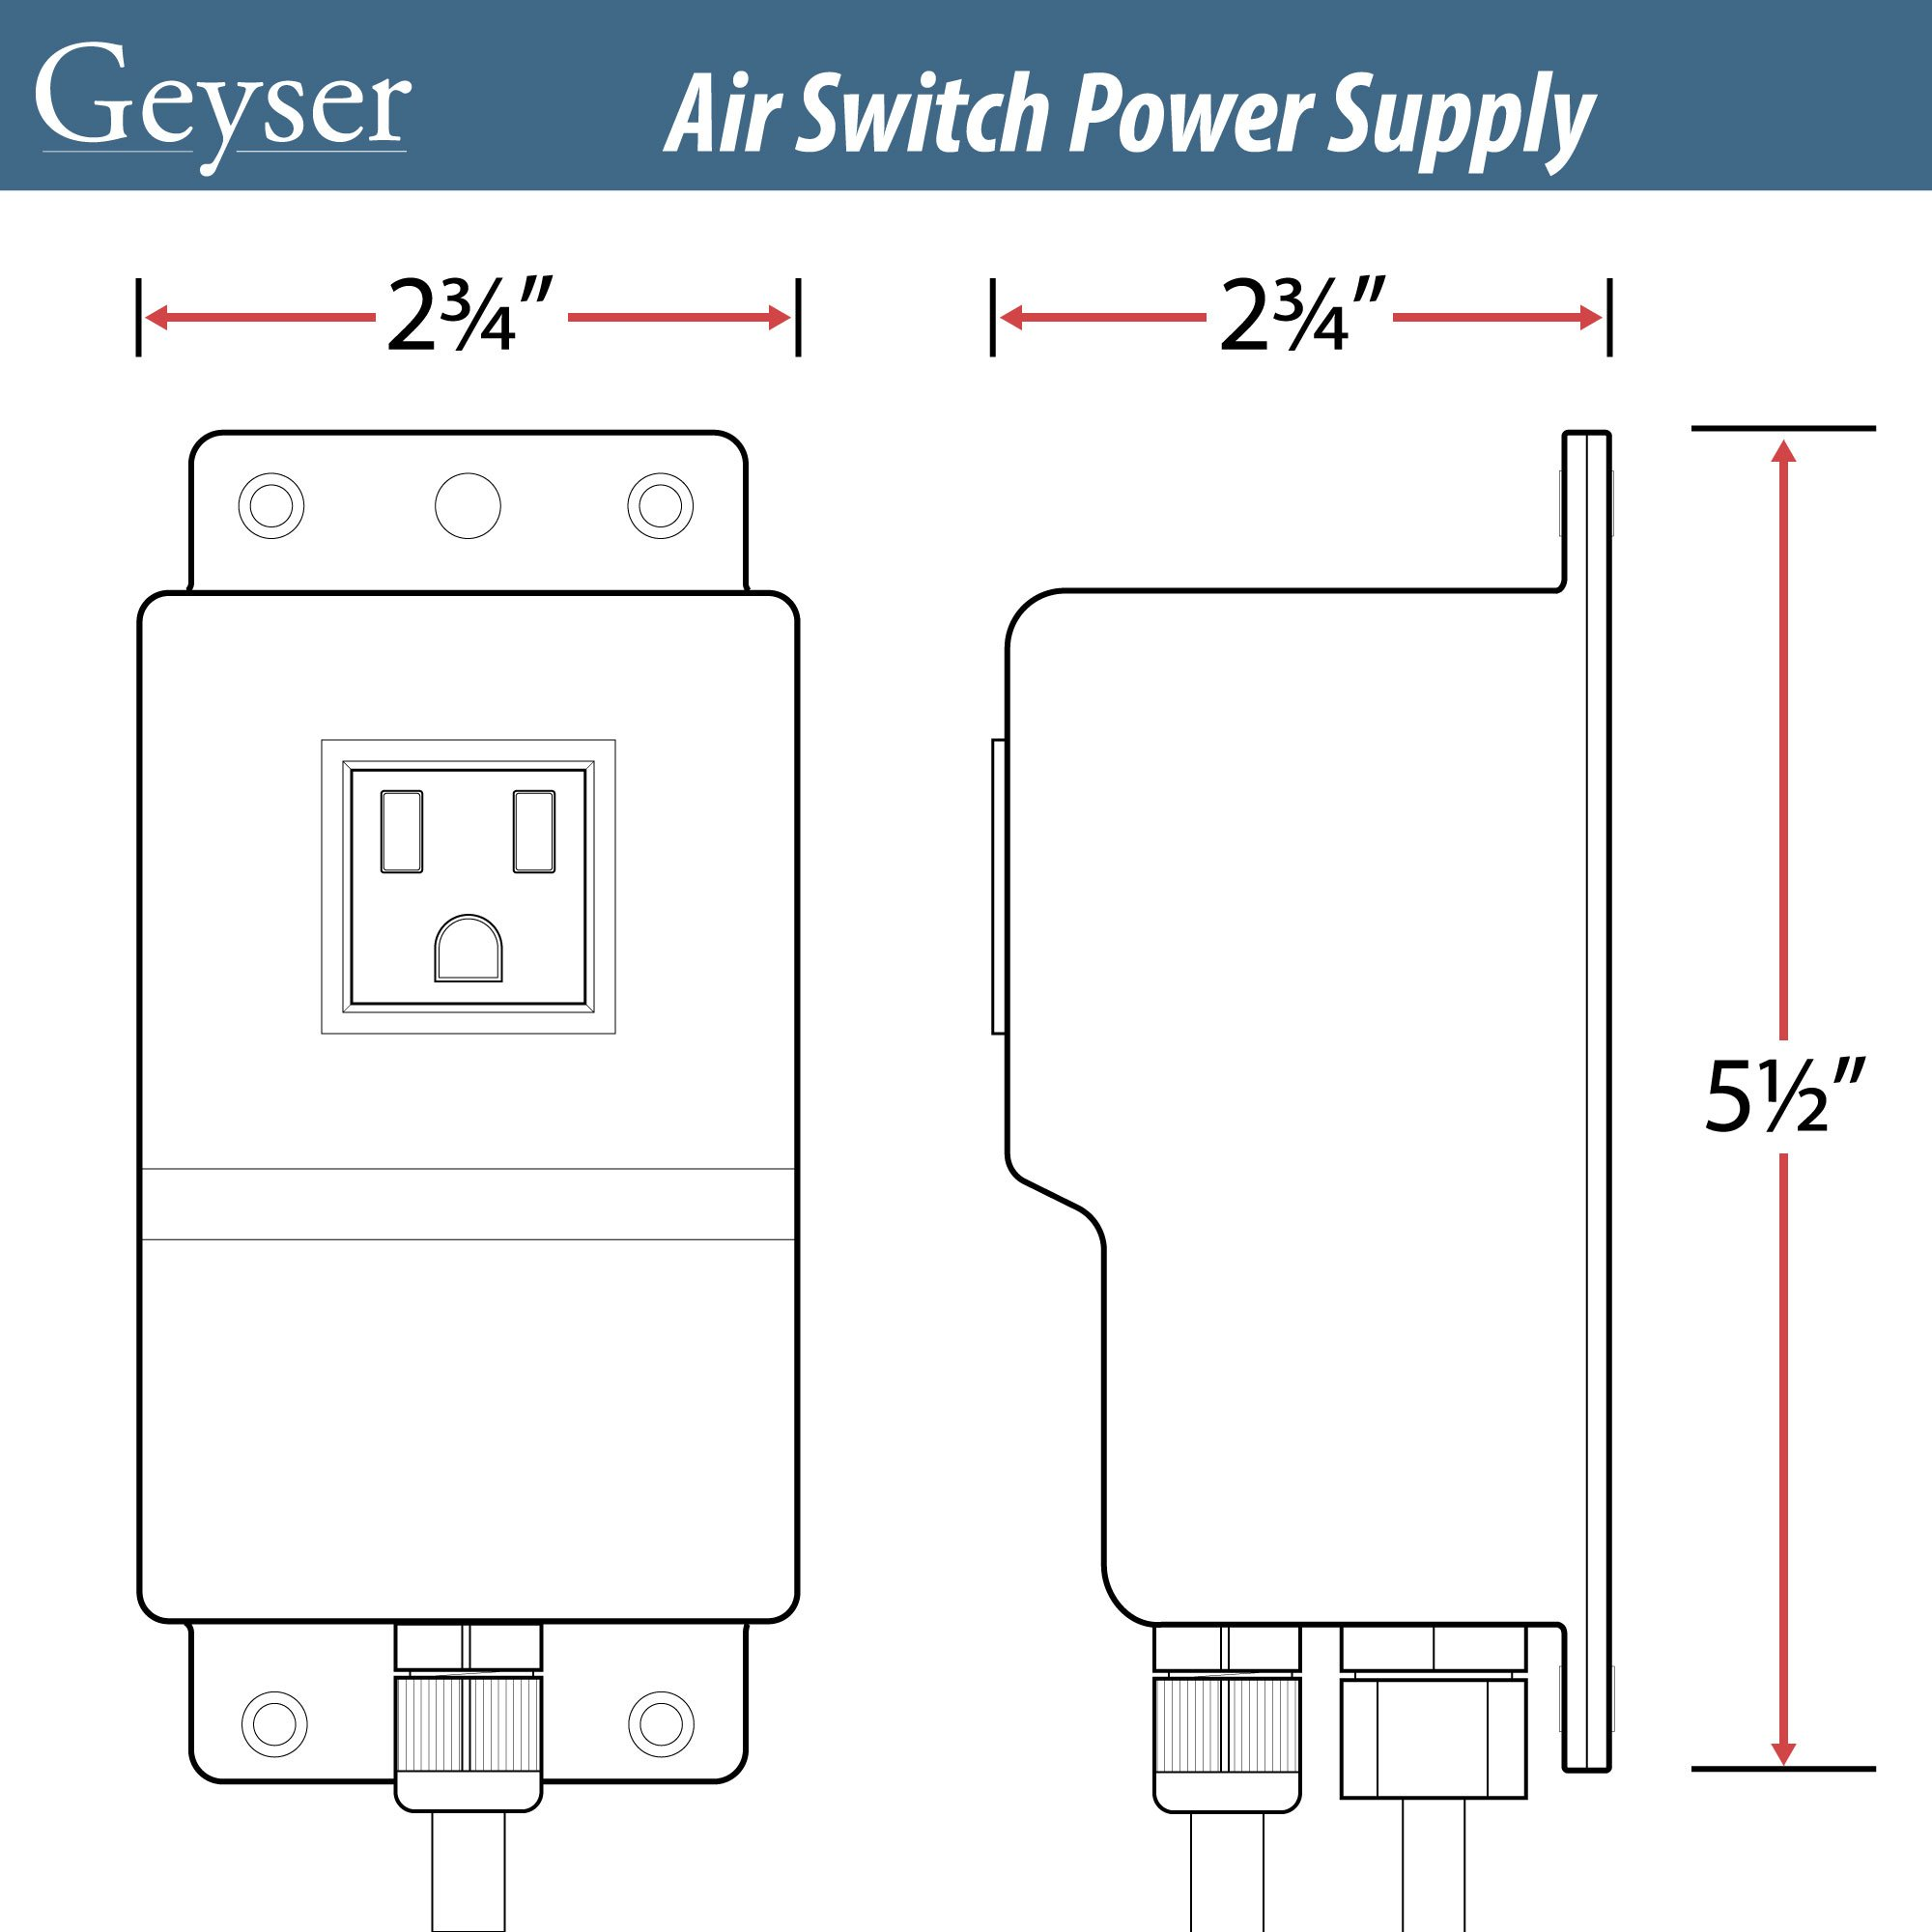 Geyser GA7, Air Swicth Control box